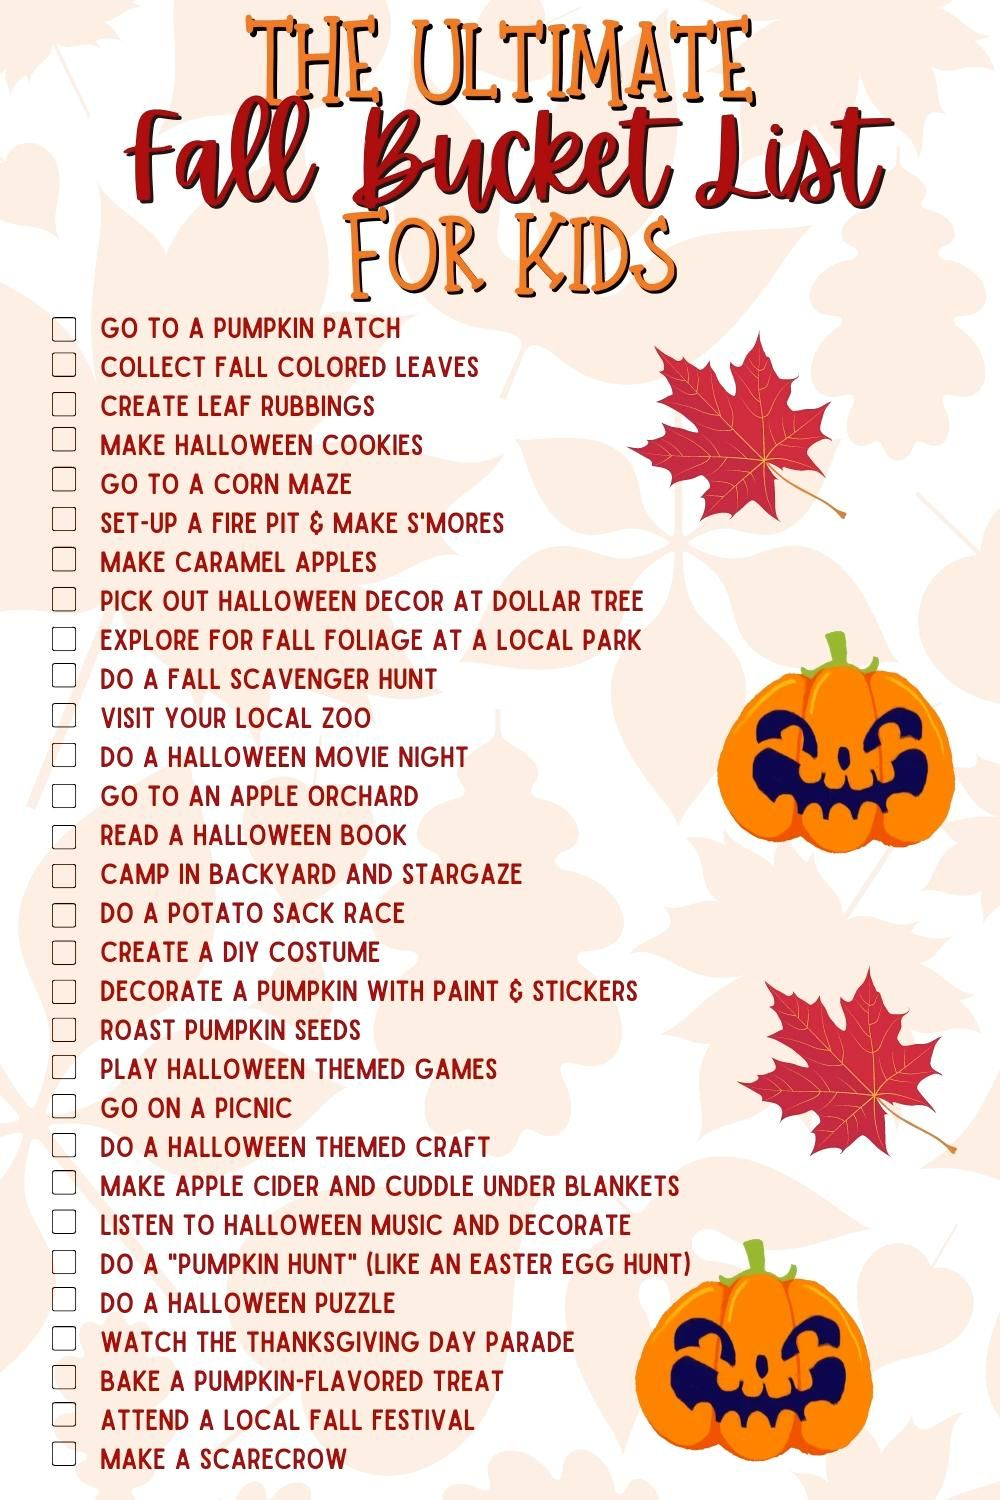 The Ultimate Fall Bucket List for Kids